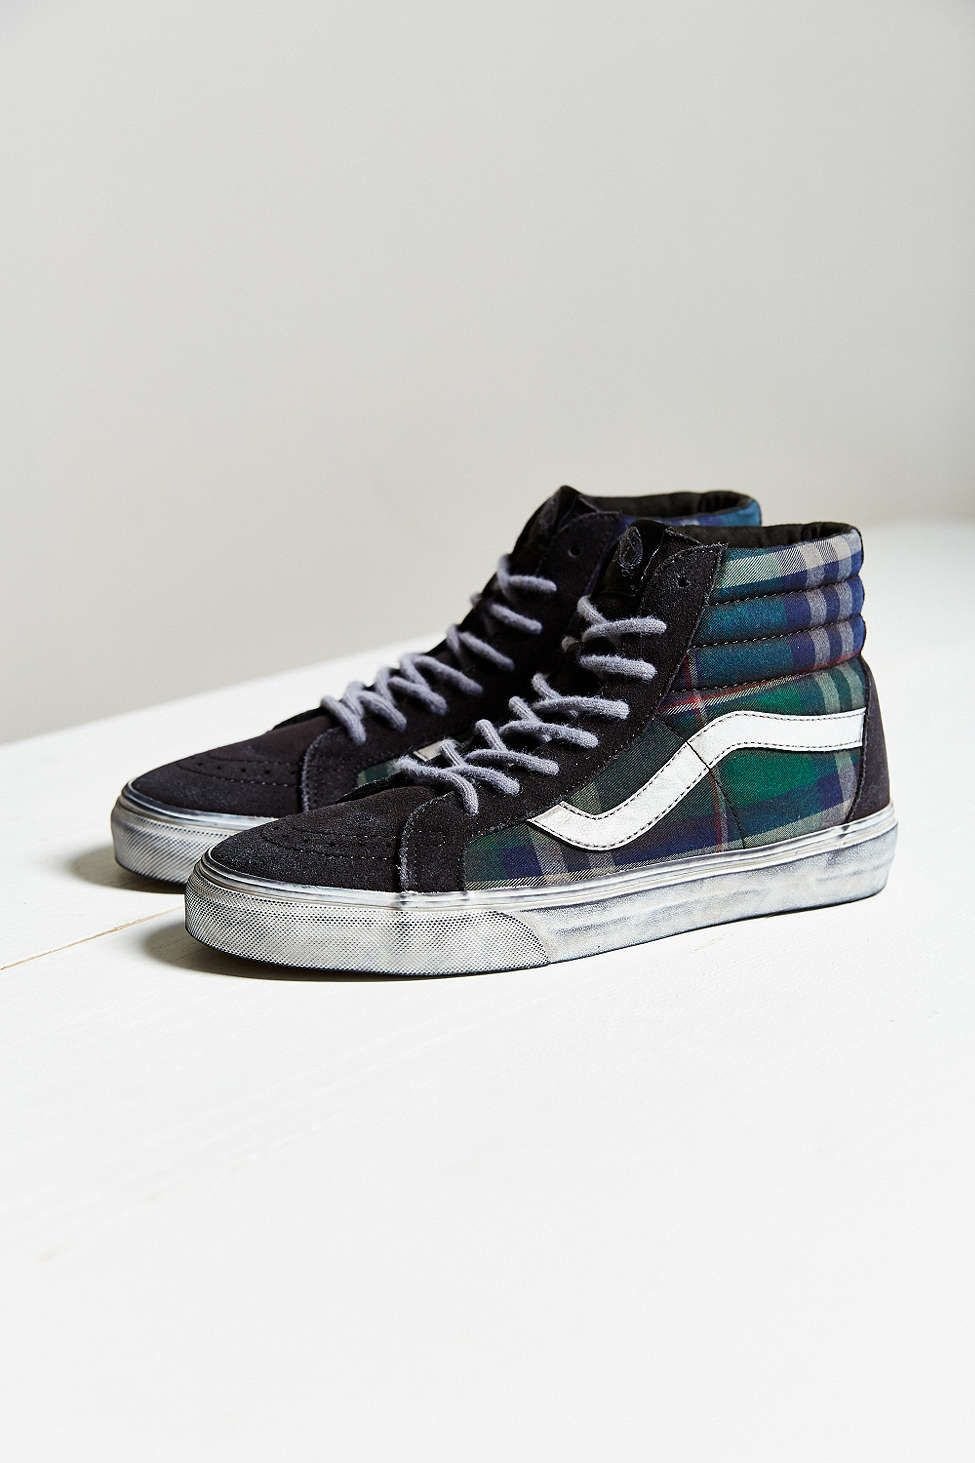 f3a01c7d8b Vans Sk8-Hi Overwashed Plaid Sneaker - Urban Outfitters